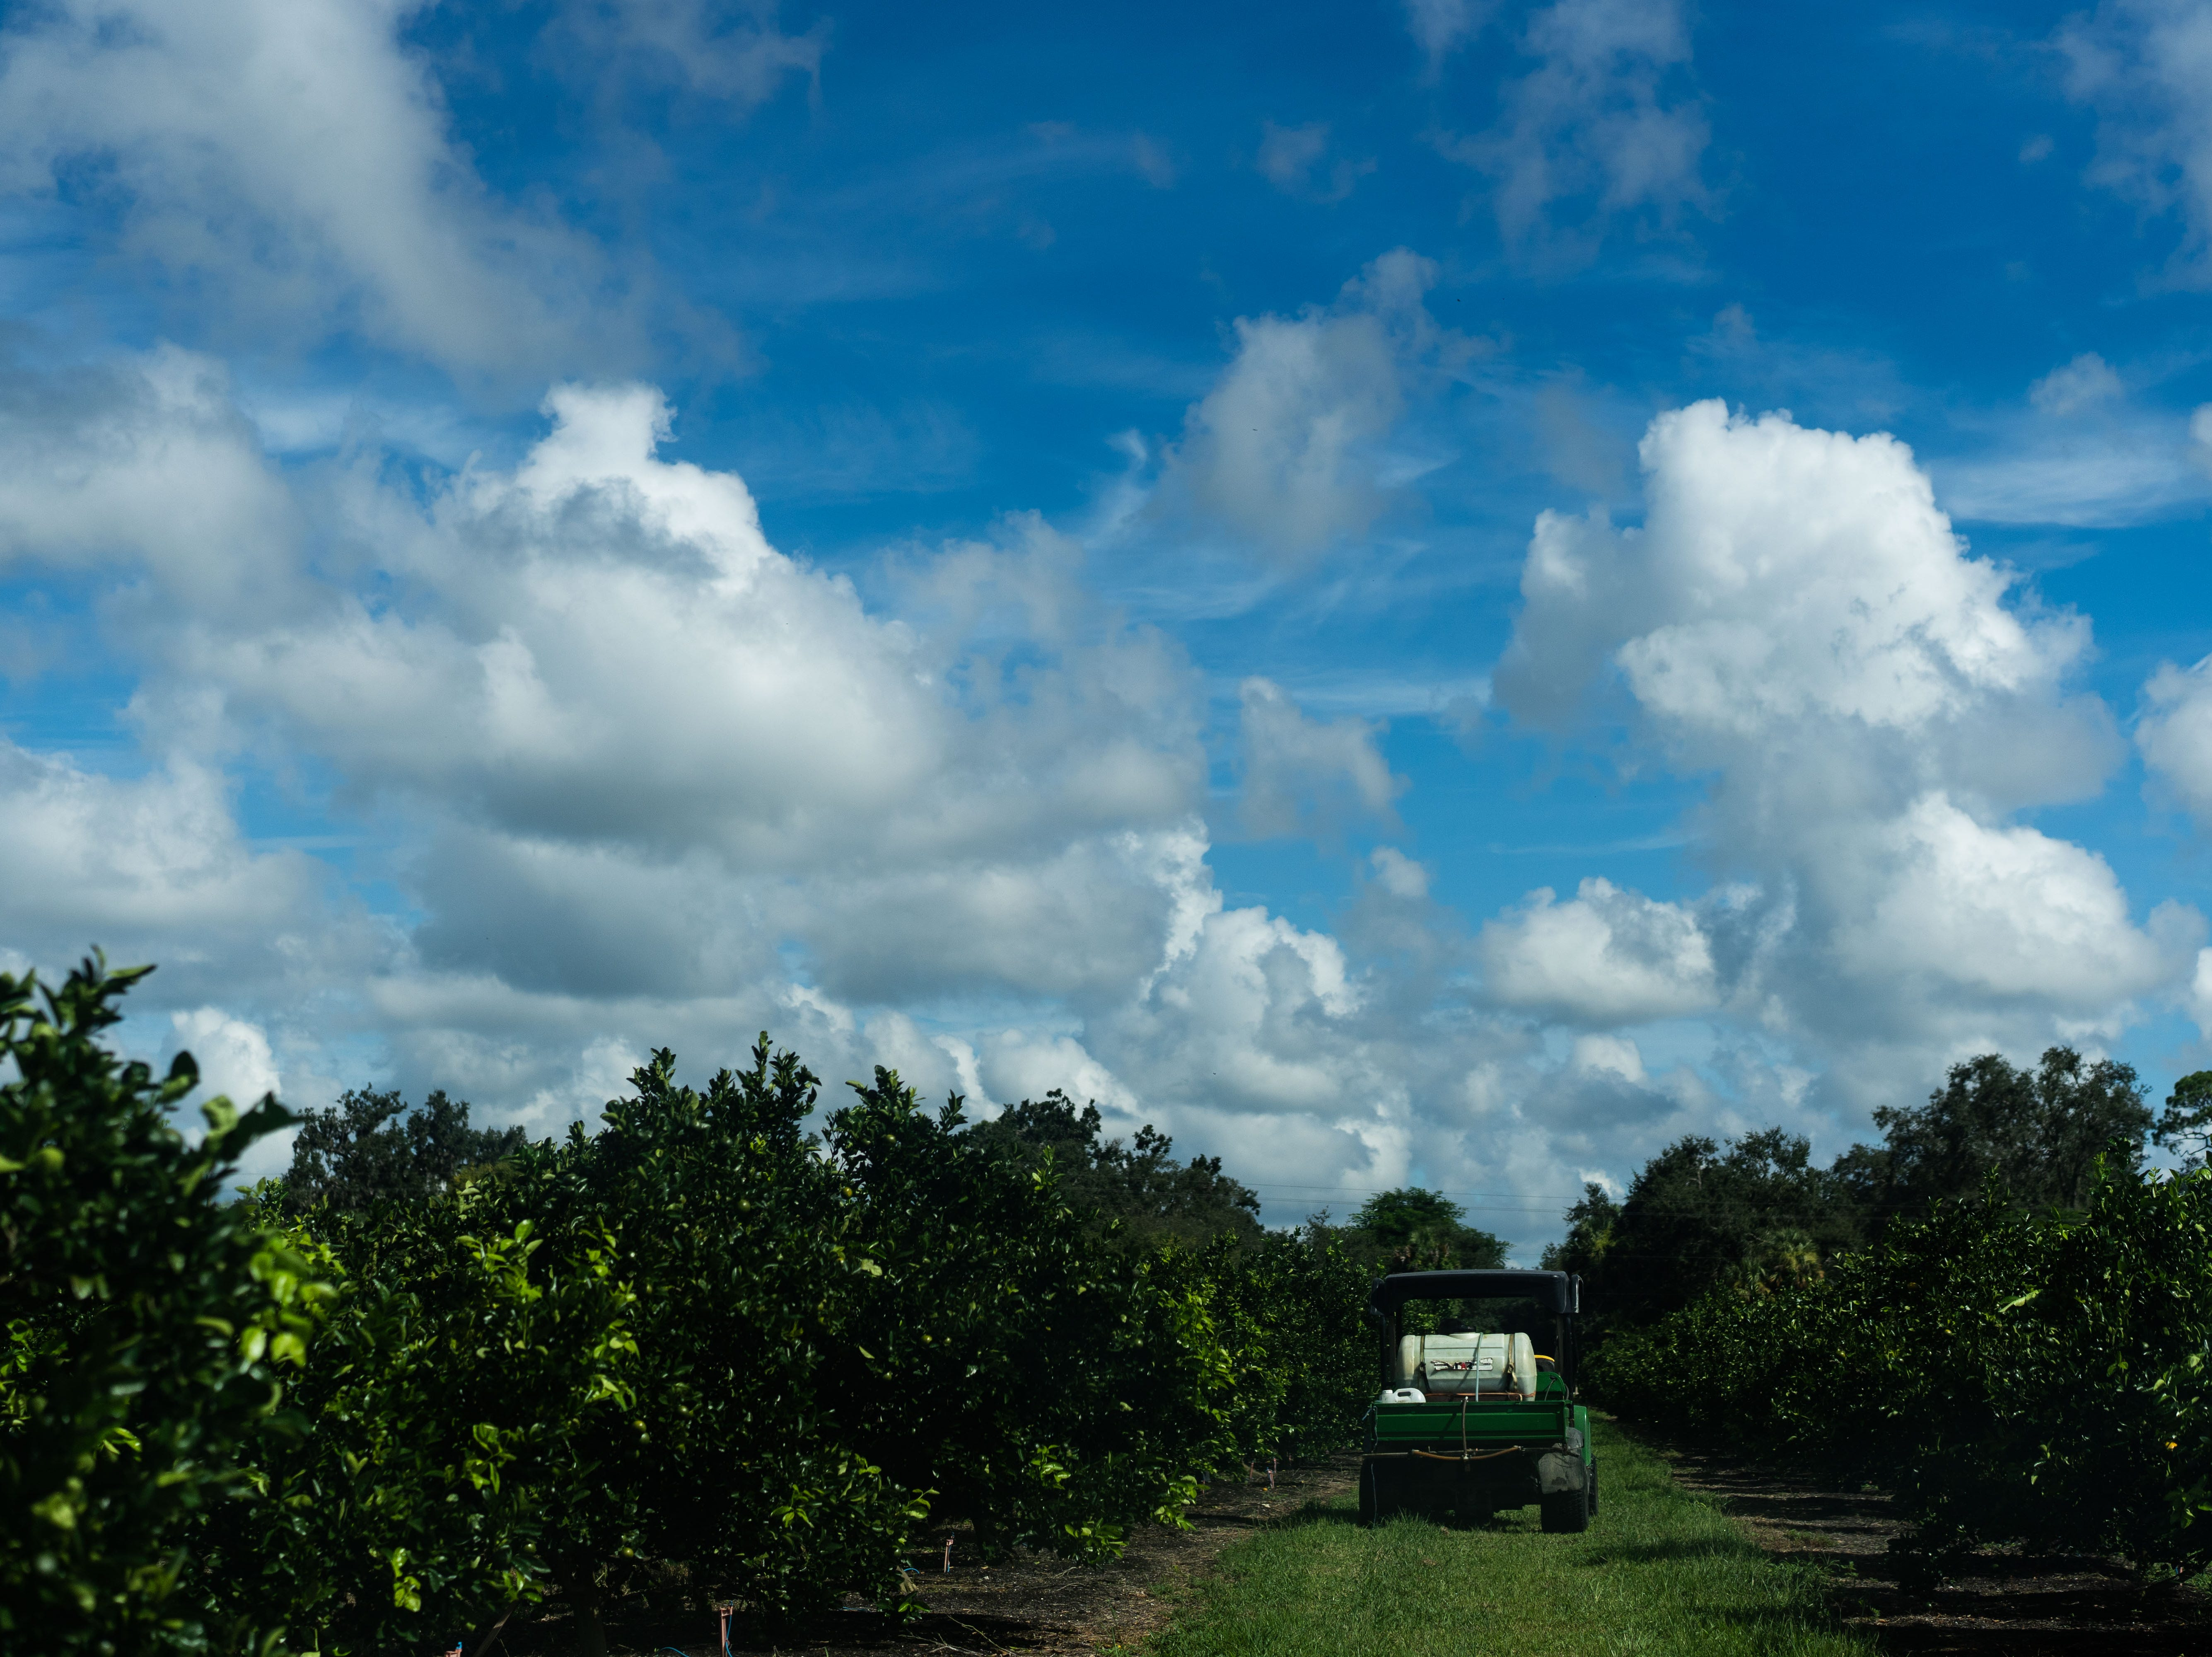 Martin Mason, the owner of Tropical Oaks Farm in LaBelle, Fla., sprays  his citrus trees, trying to protect them from sunburns and pests.